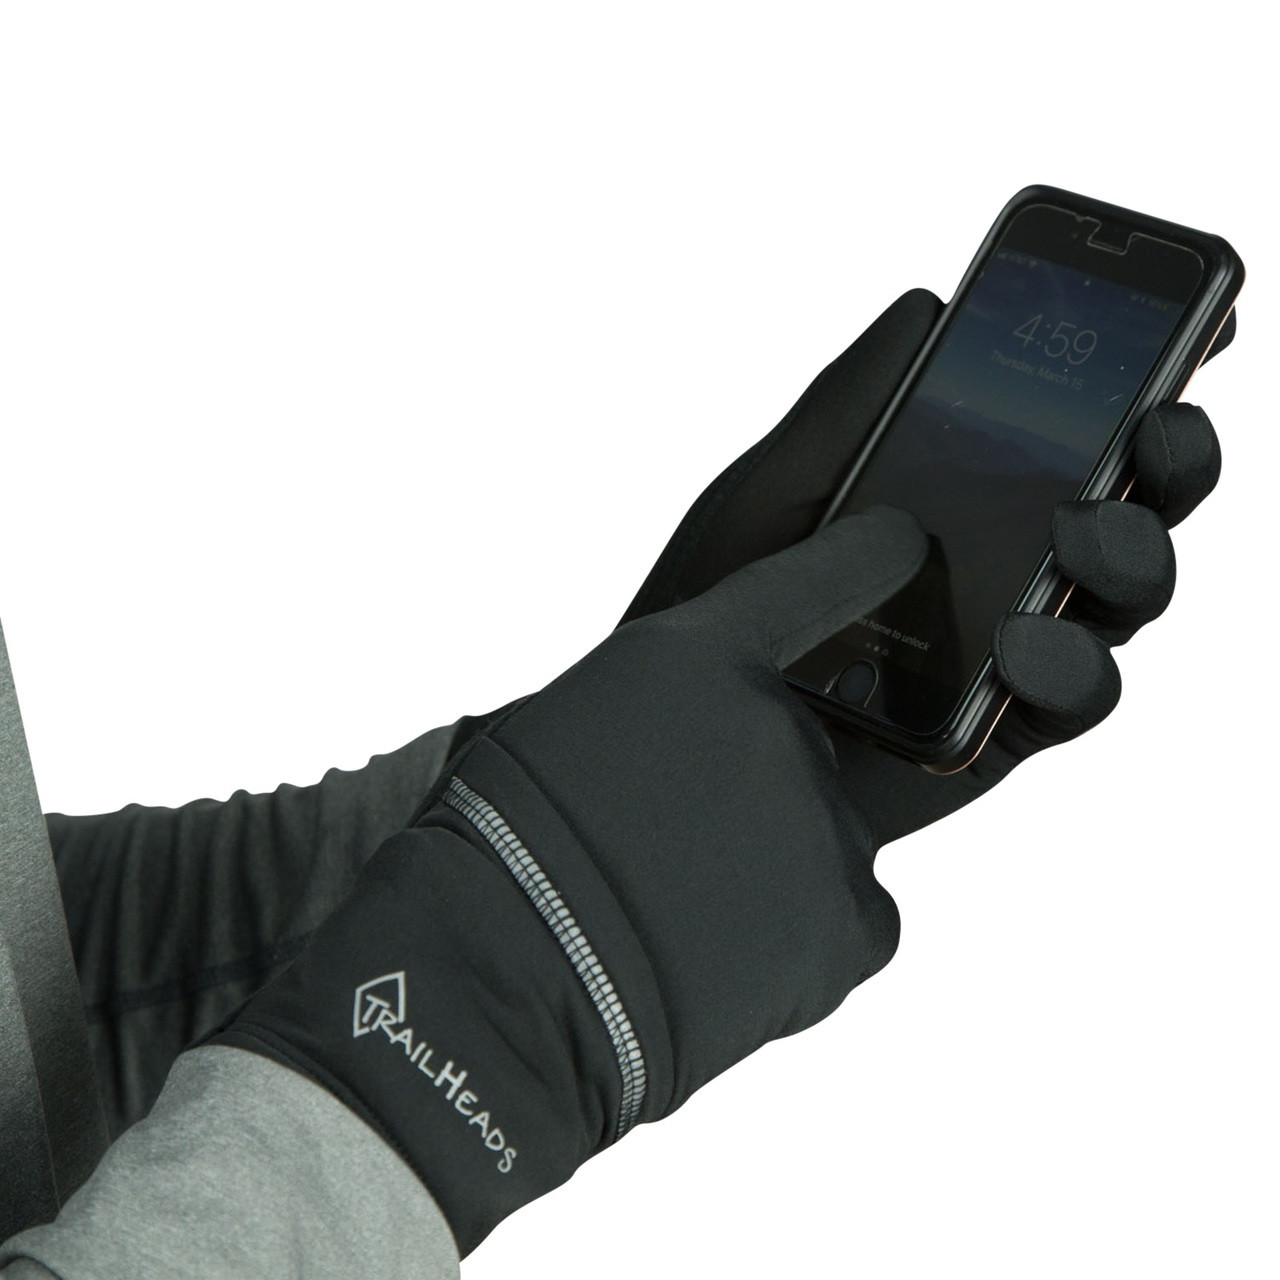 touch screen compatible thumb and forefinger